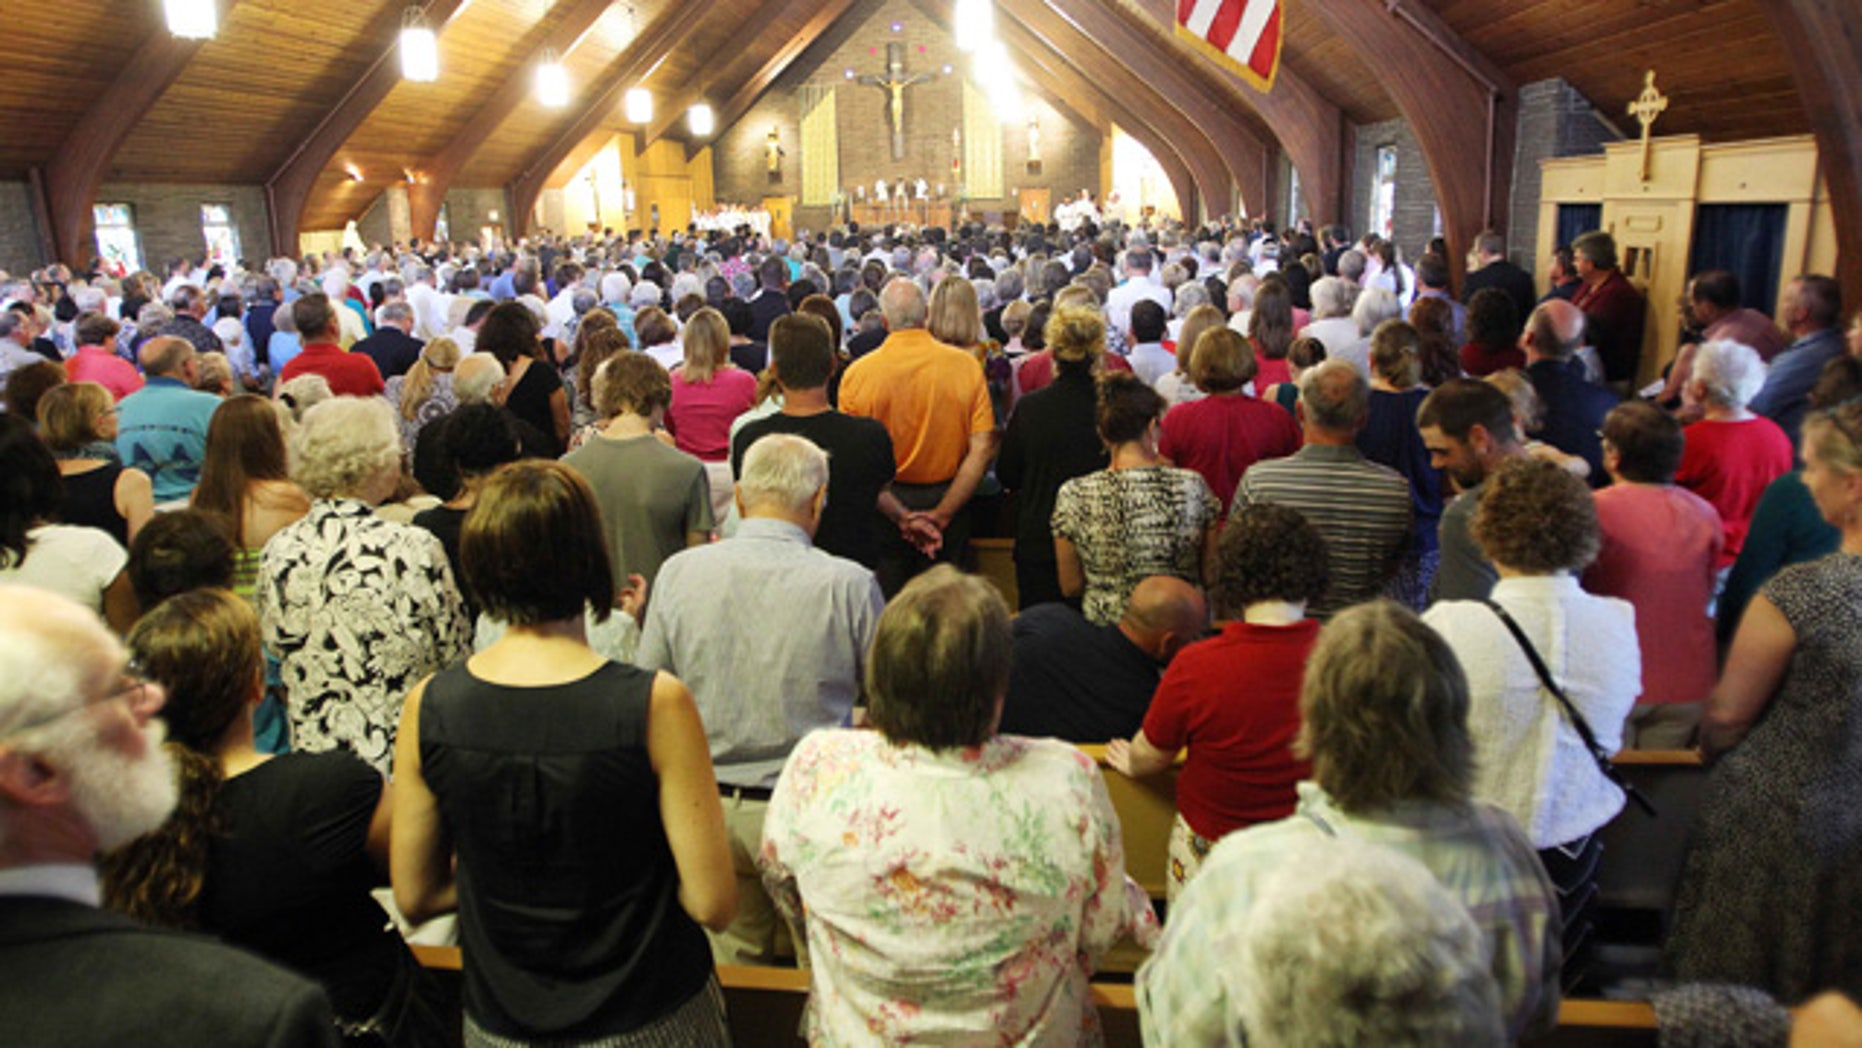 August 24, 2014: Mourners pack Our Lady of the Holy Rosary Catholic church during a special Mass for murdered journalist James Foley in his hometown of Rochester, N.H. (AP Photo/Jim Cole)